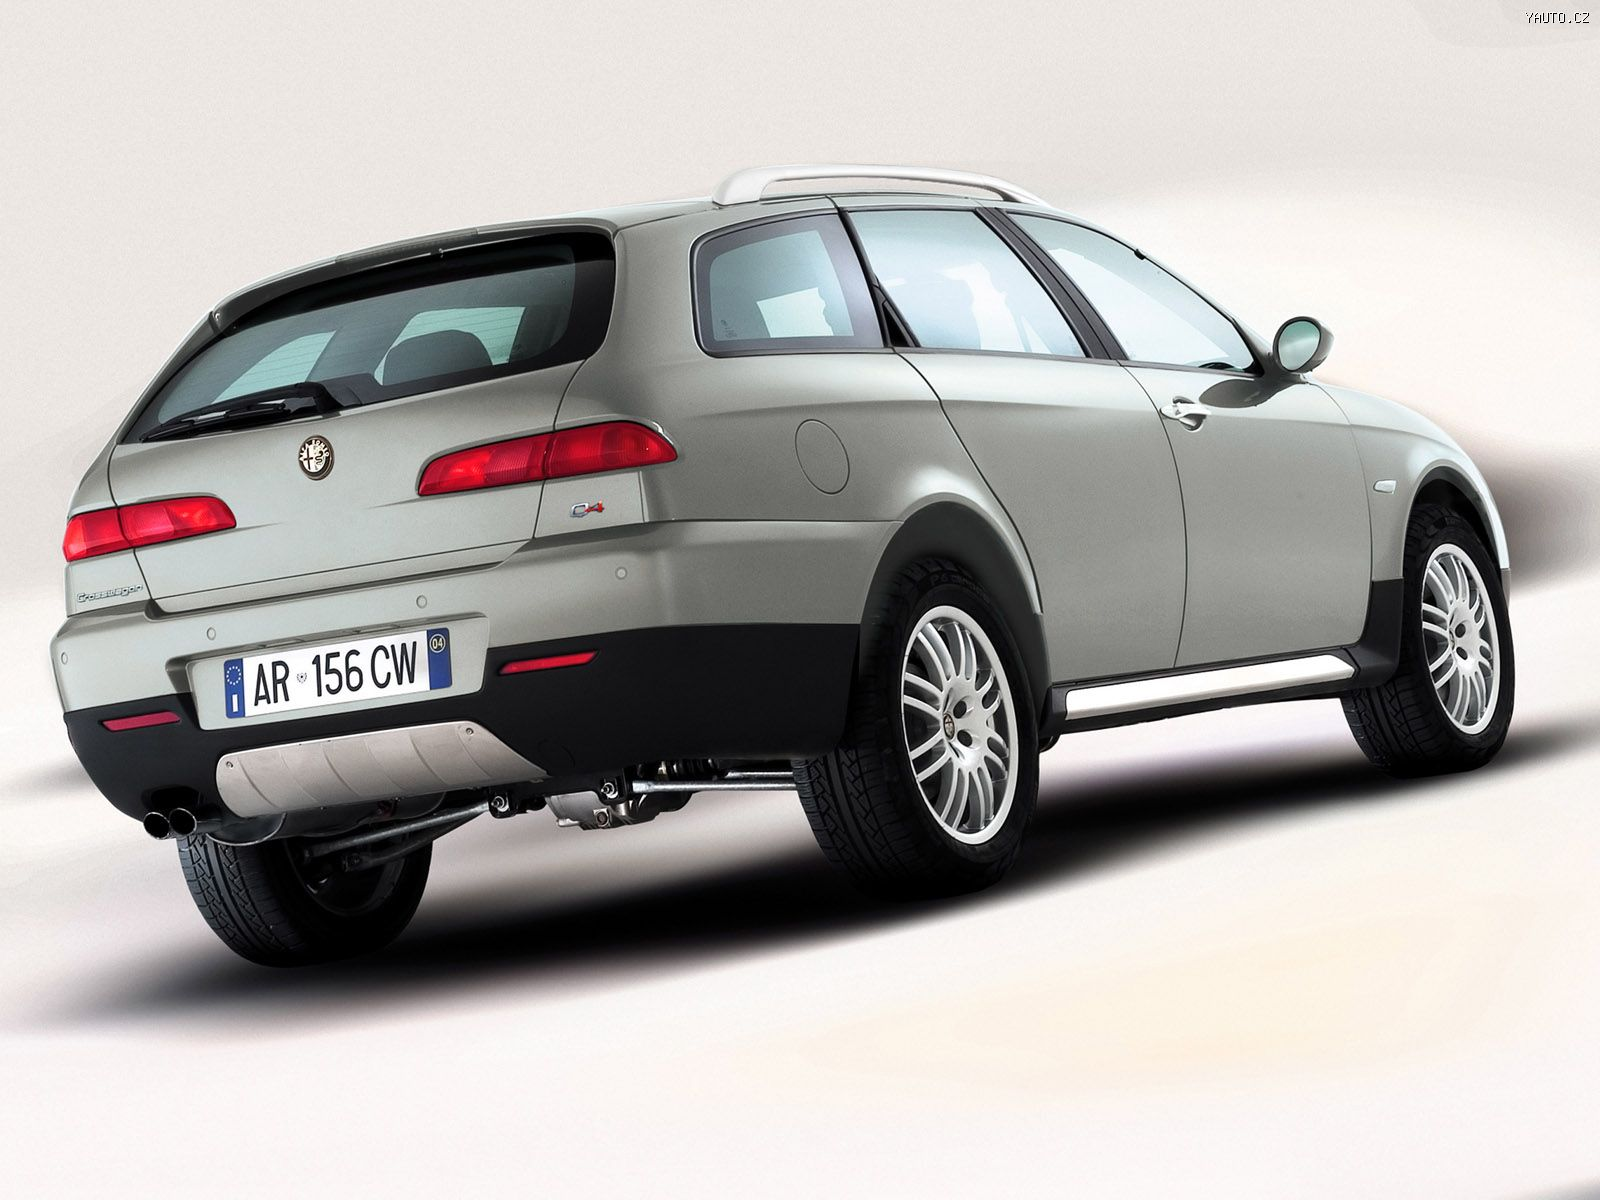 2018 Alfa Romeo 156 Crosswagon photo - 1